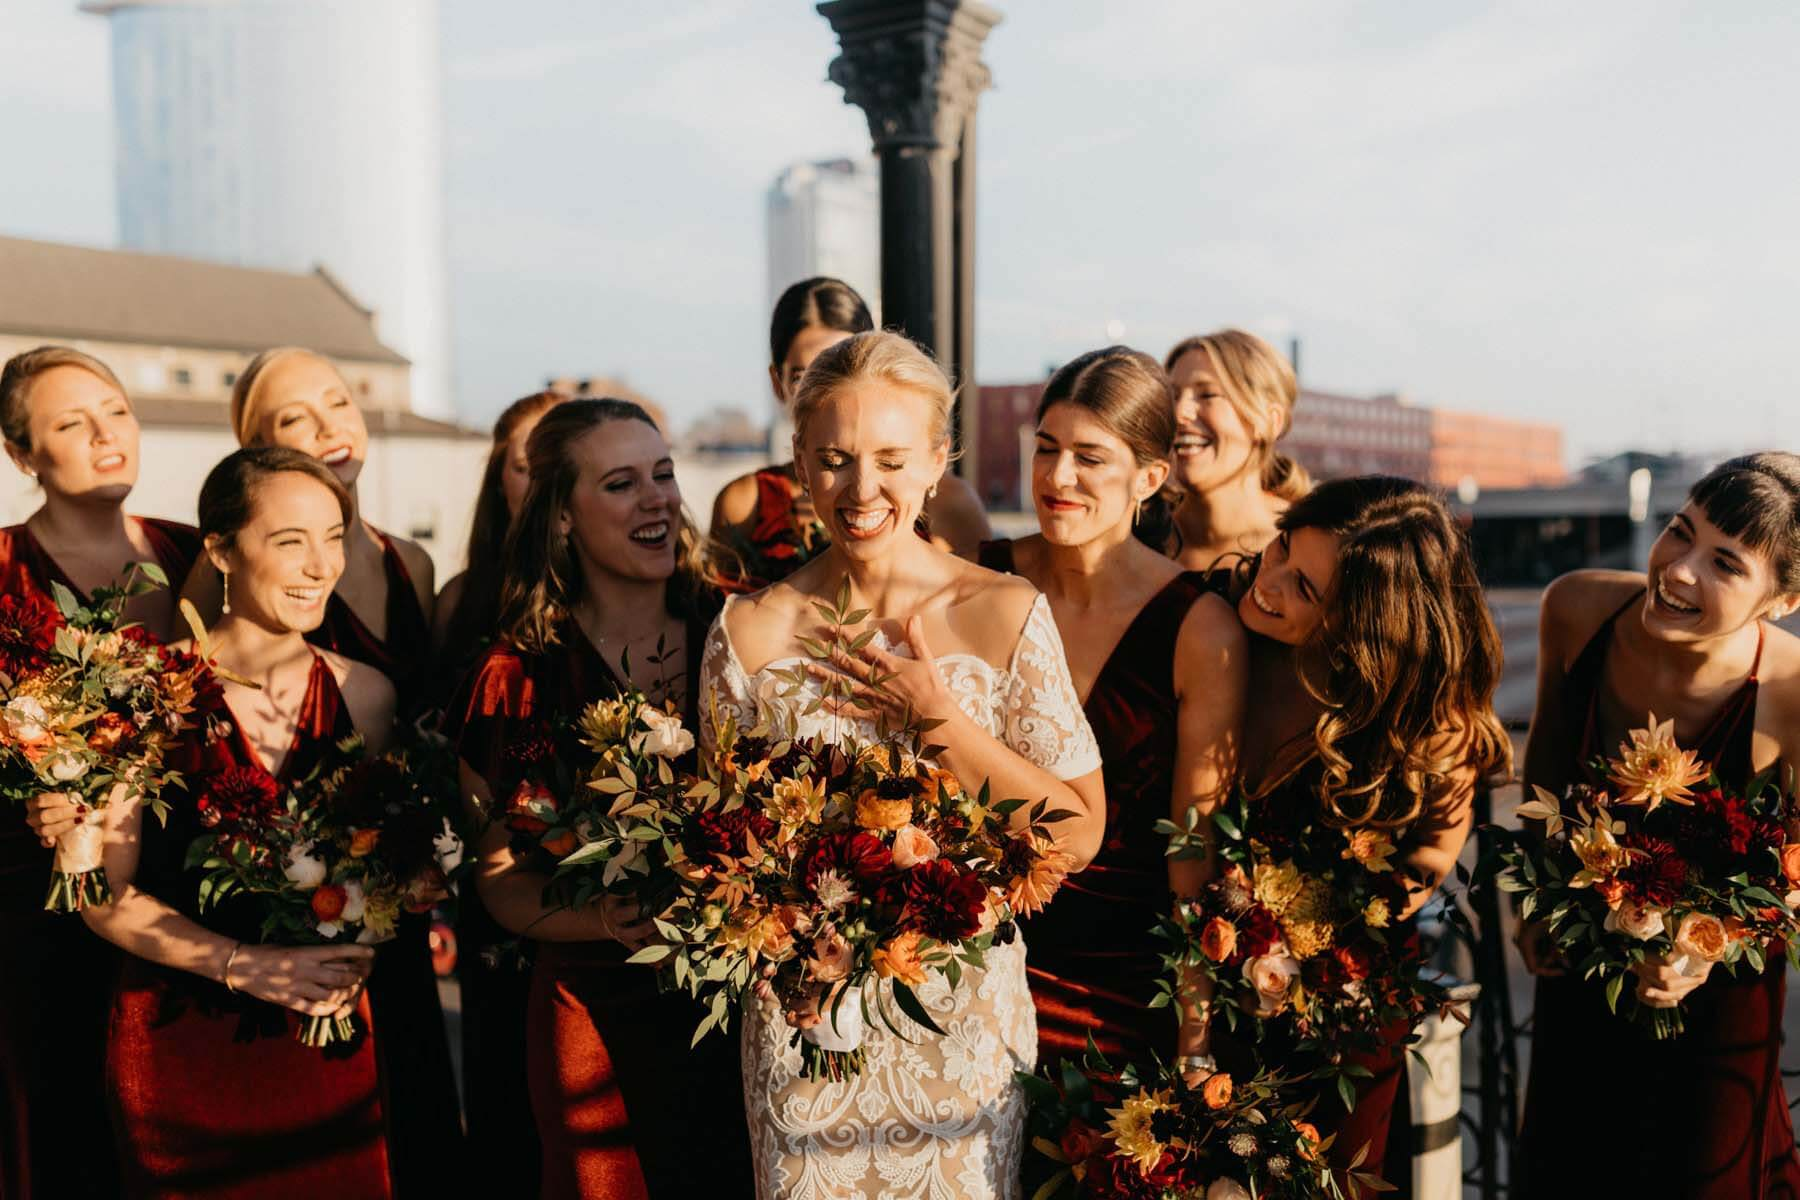 English Taylor with her bridesmaids and autumn wedding bouquets